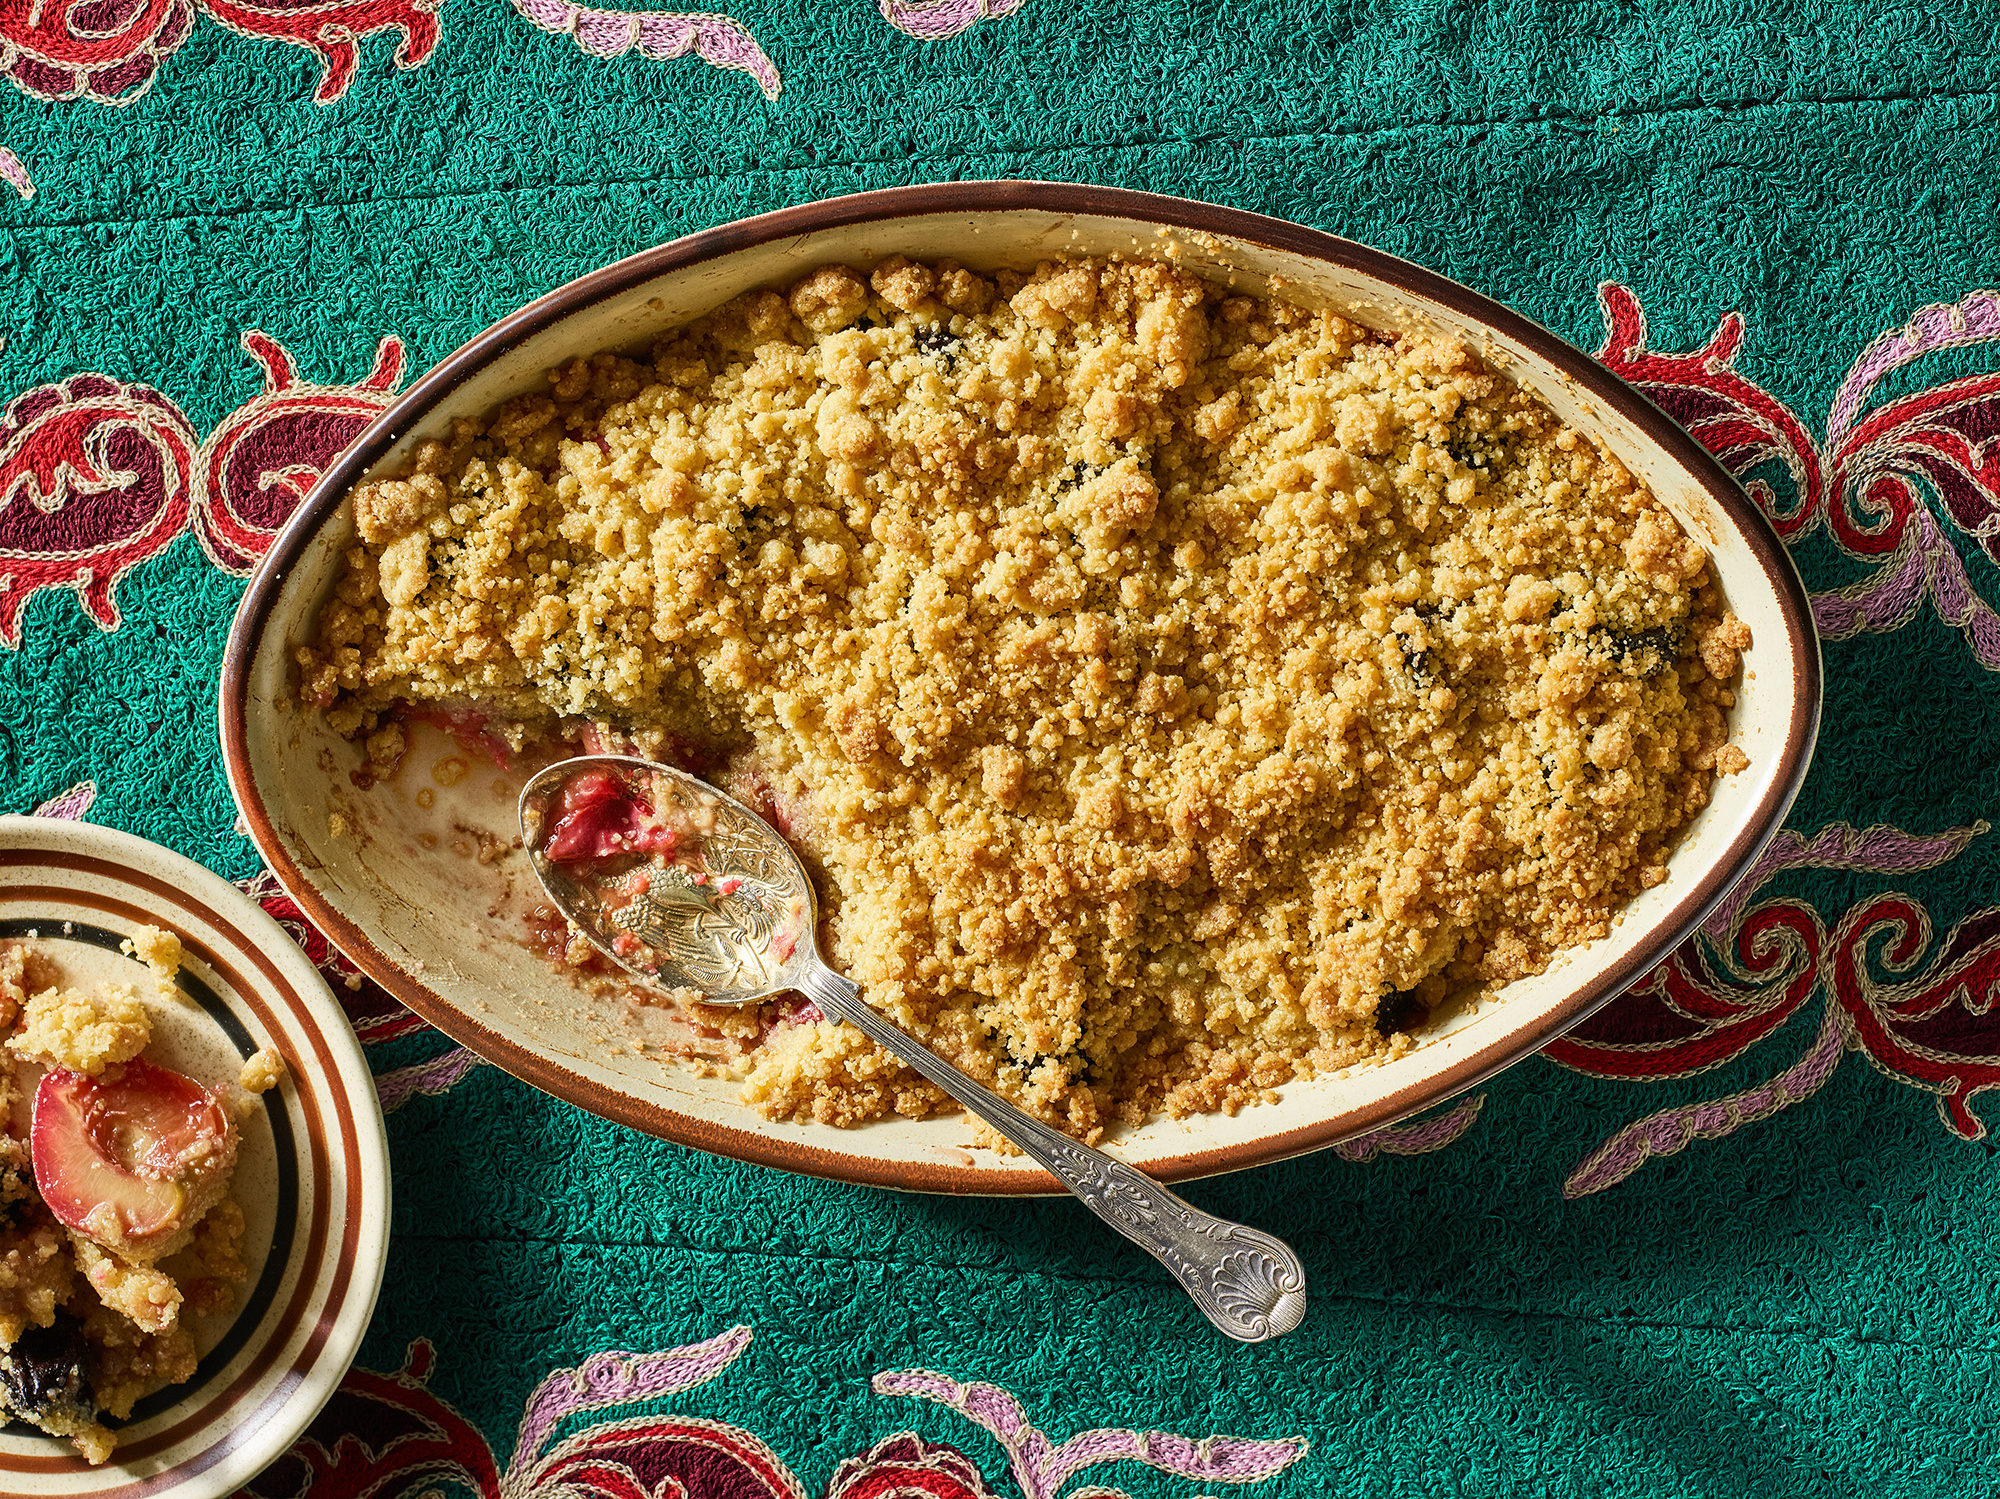 Plum crumble in an oval-shaped baking dish atop a green and red tablecloth